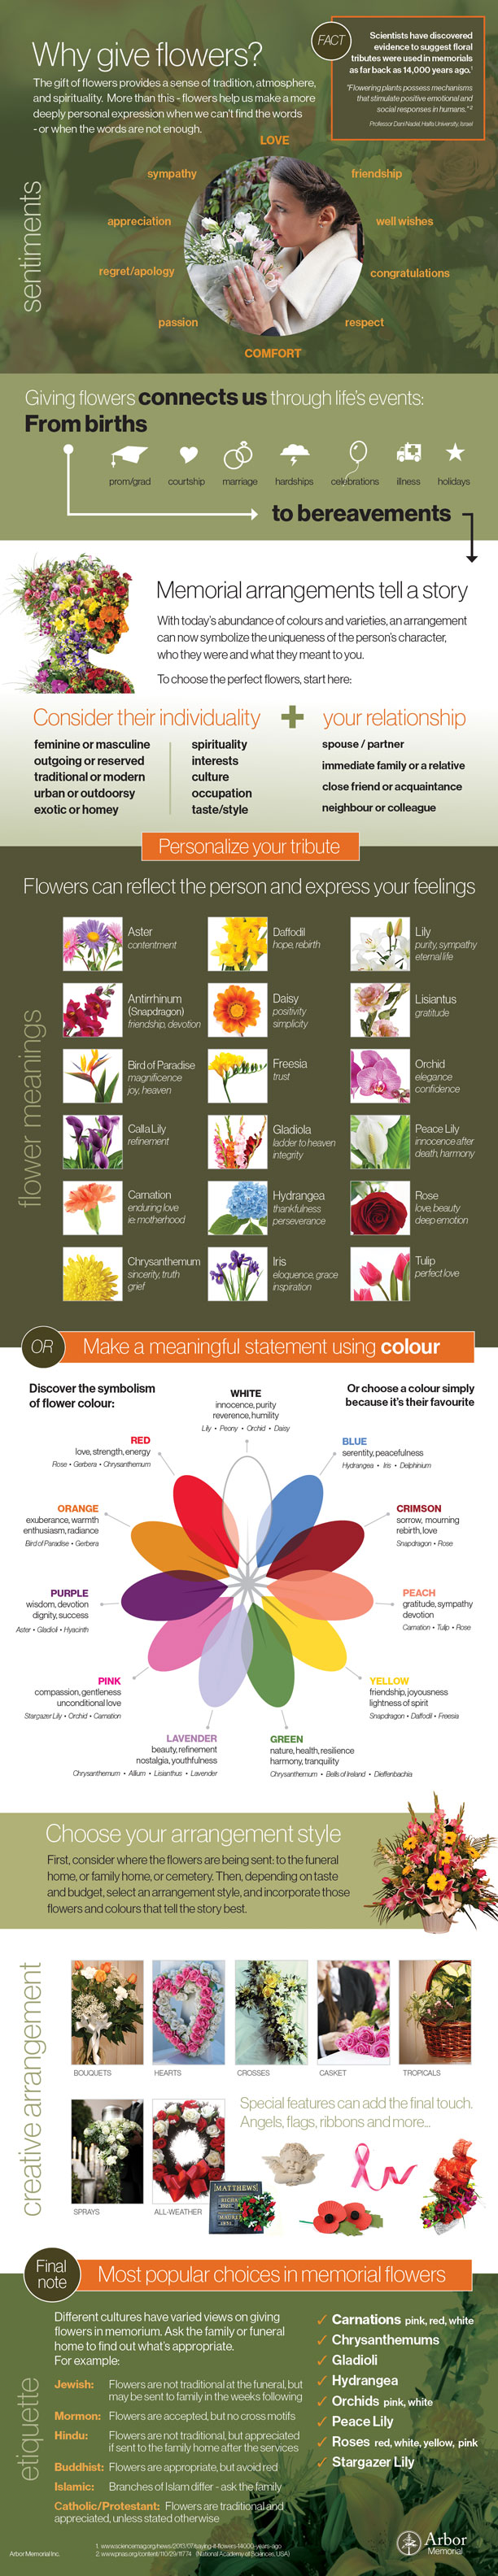 Infographic: The Meaning of Flowers